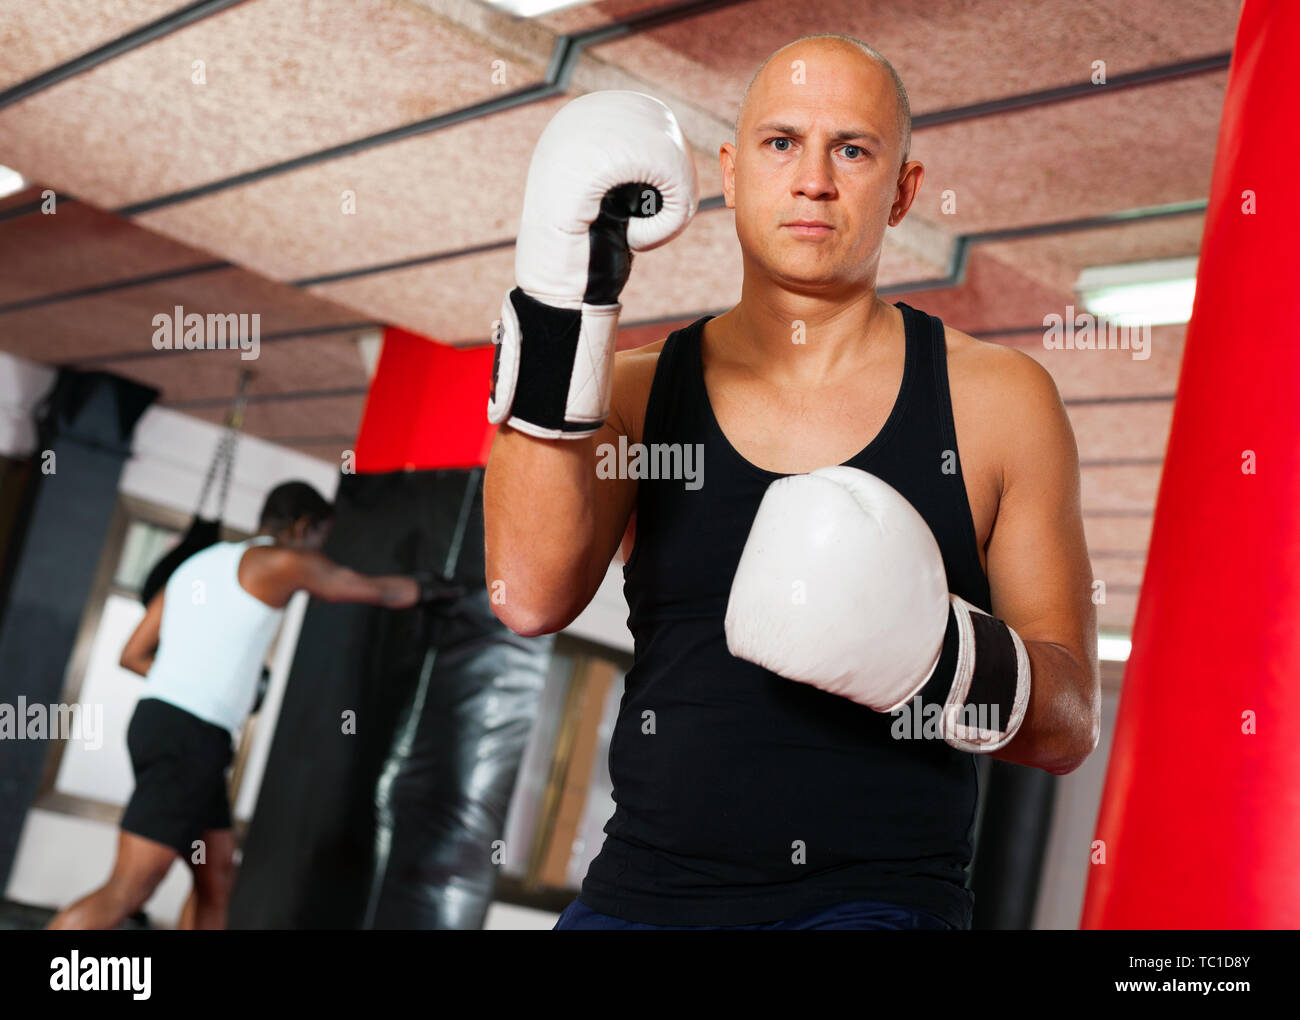 Training of cheerful positive muscular boxers in the gym - Stock Image